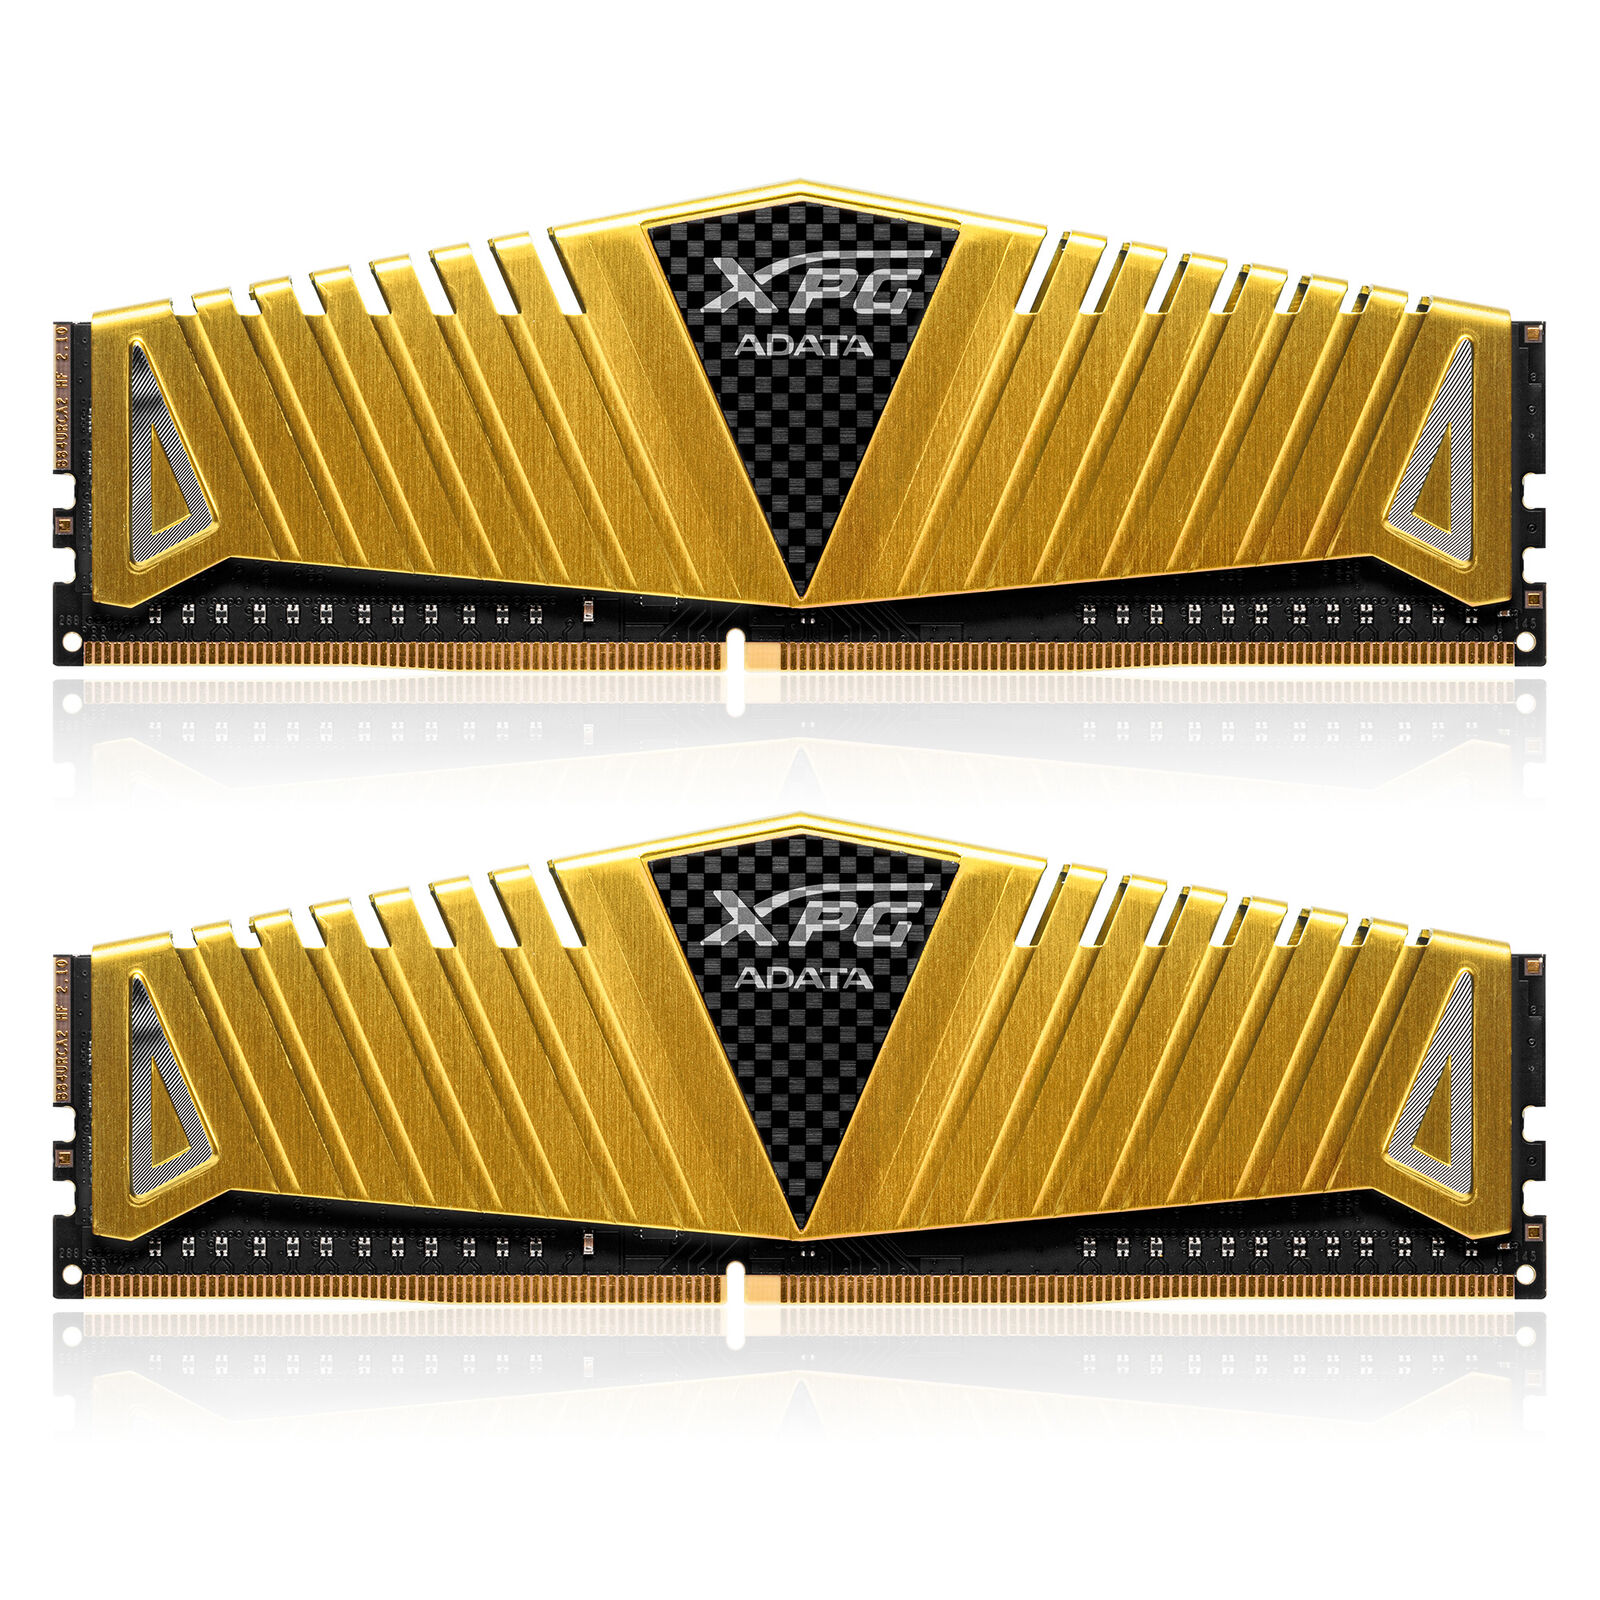 XPG Z1 Desktop Memory: 16GB (2x8GB) DDR4 3200MHz CL16 Gold. Buy it now for 77.99